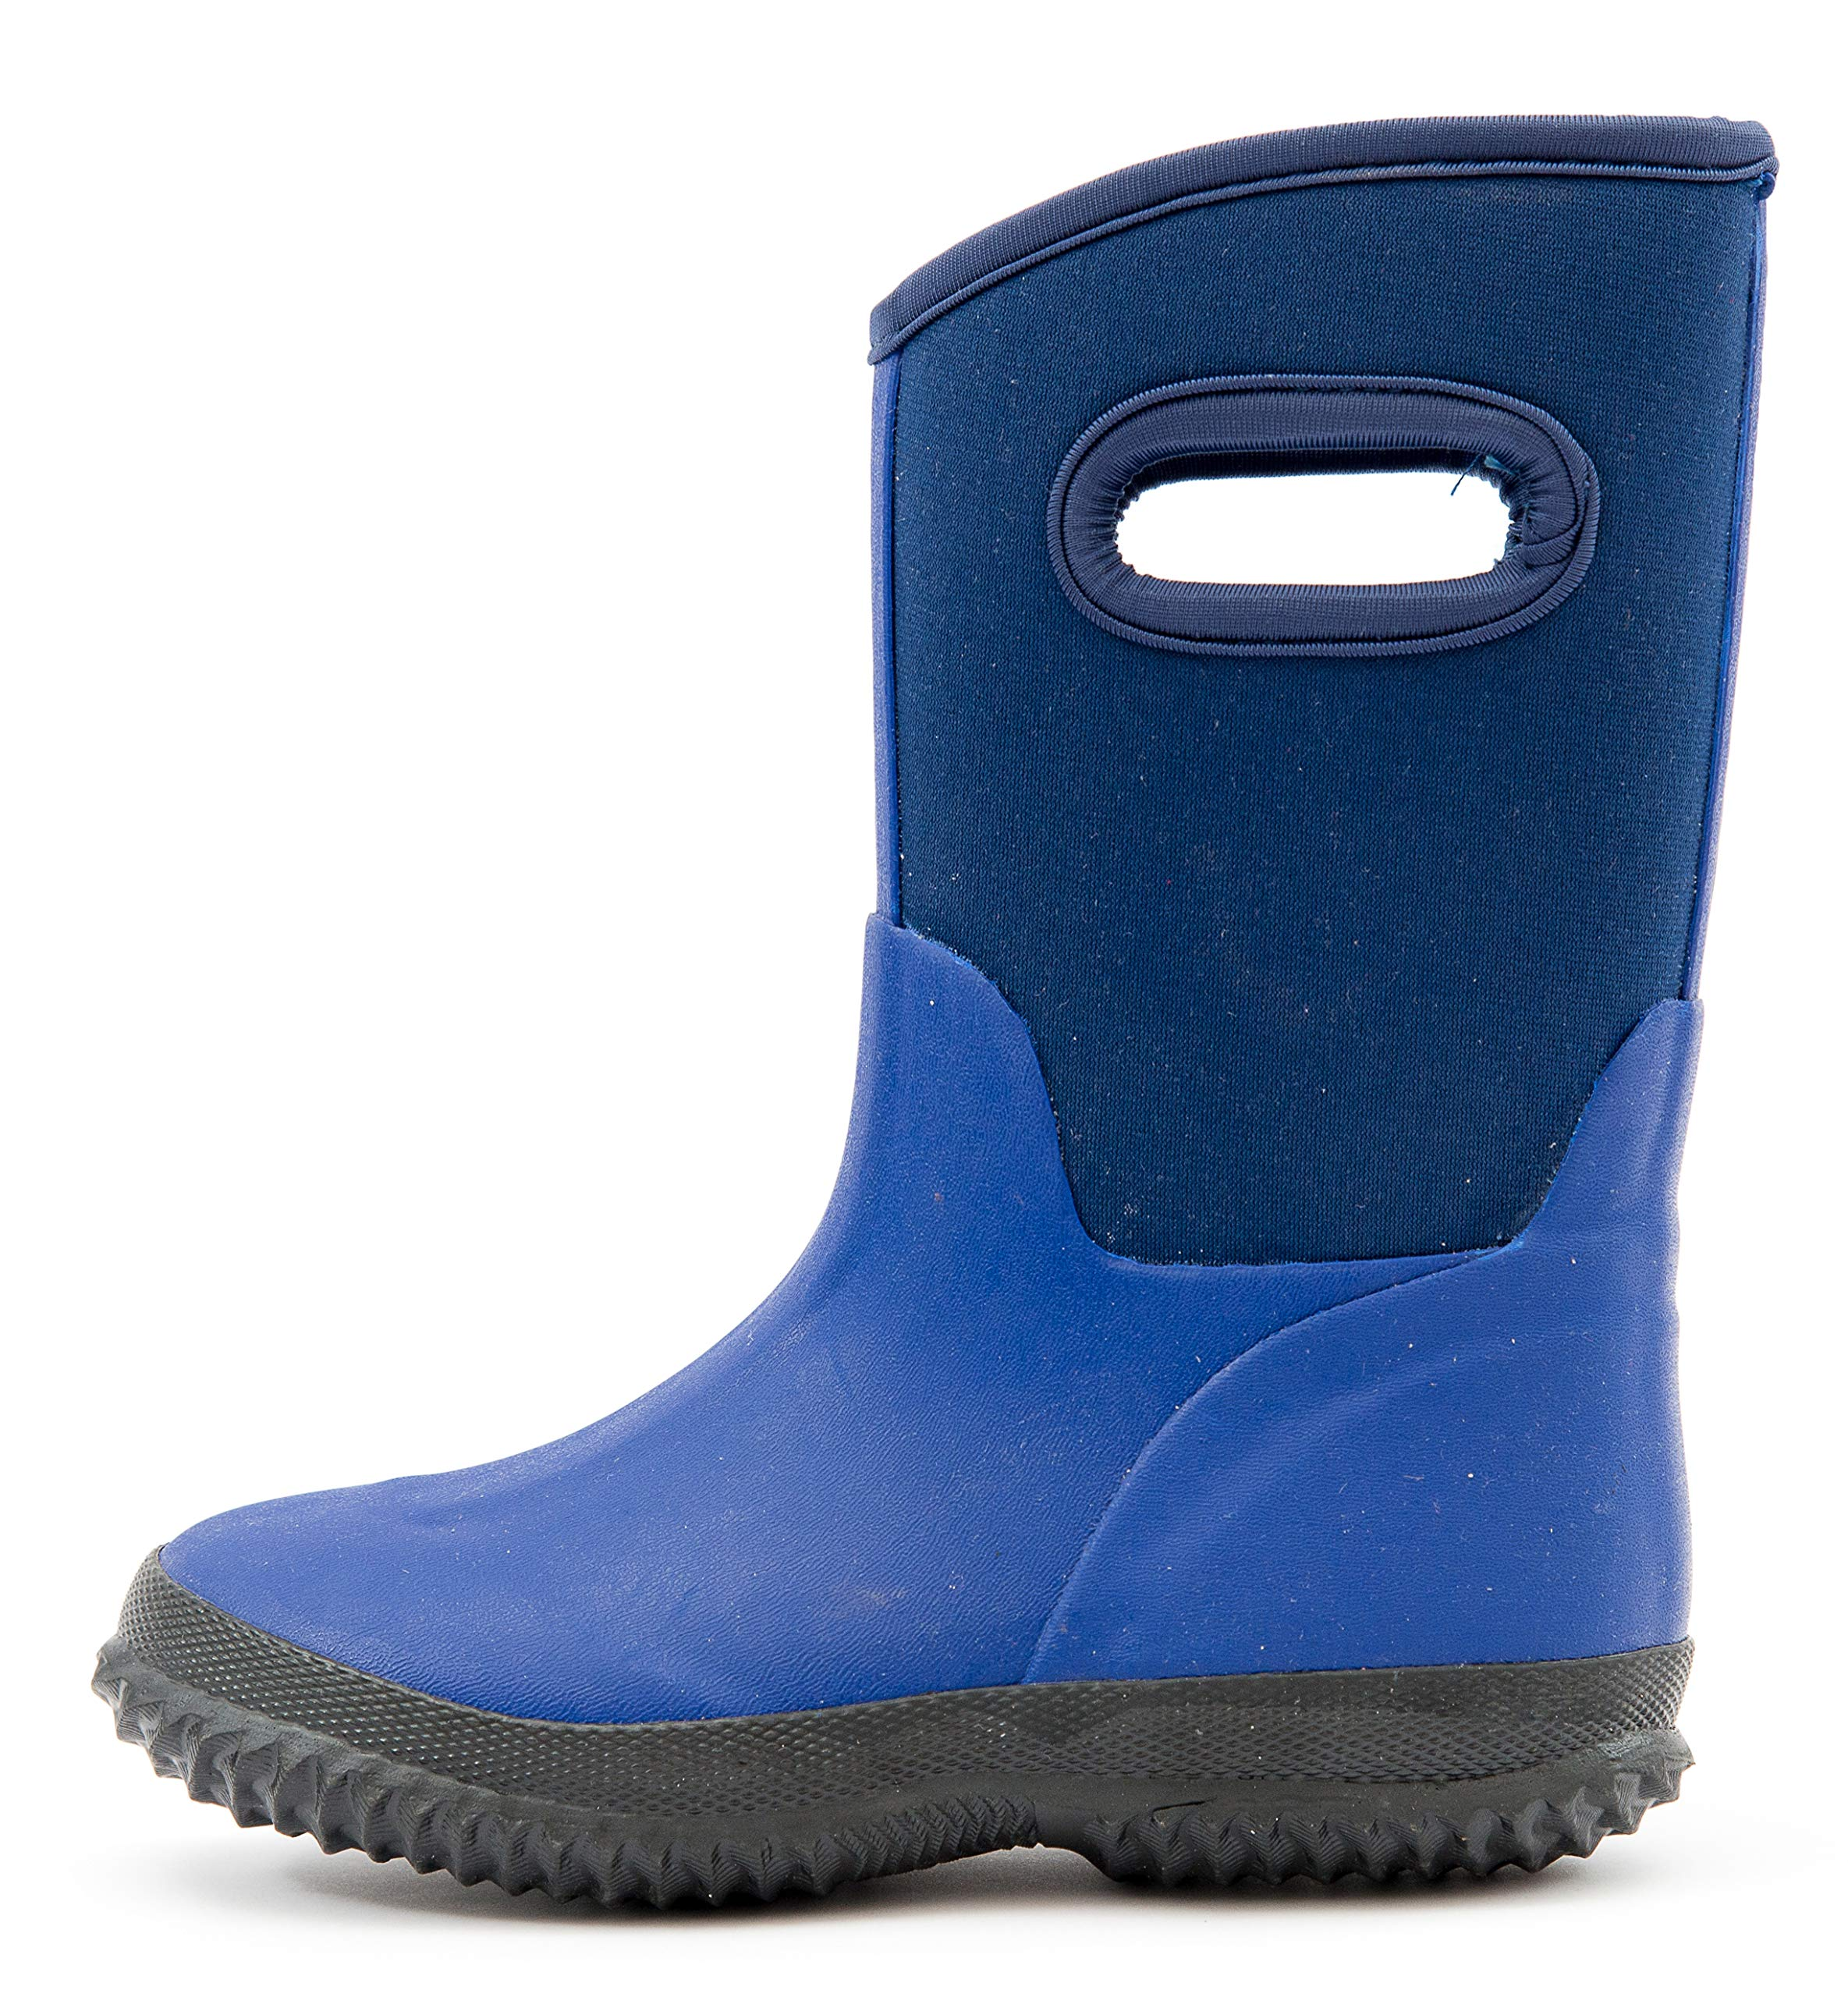 Outee Boys Kids Toddler Snow Winter Neoprene Boots Rubber Rain Boots Waterproof Outdoor Shoes Thermal Memory Foam Comfortable Easy On and Off (Size 2,Blue)